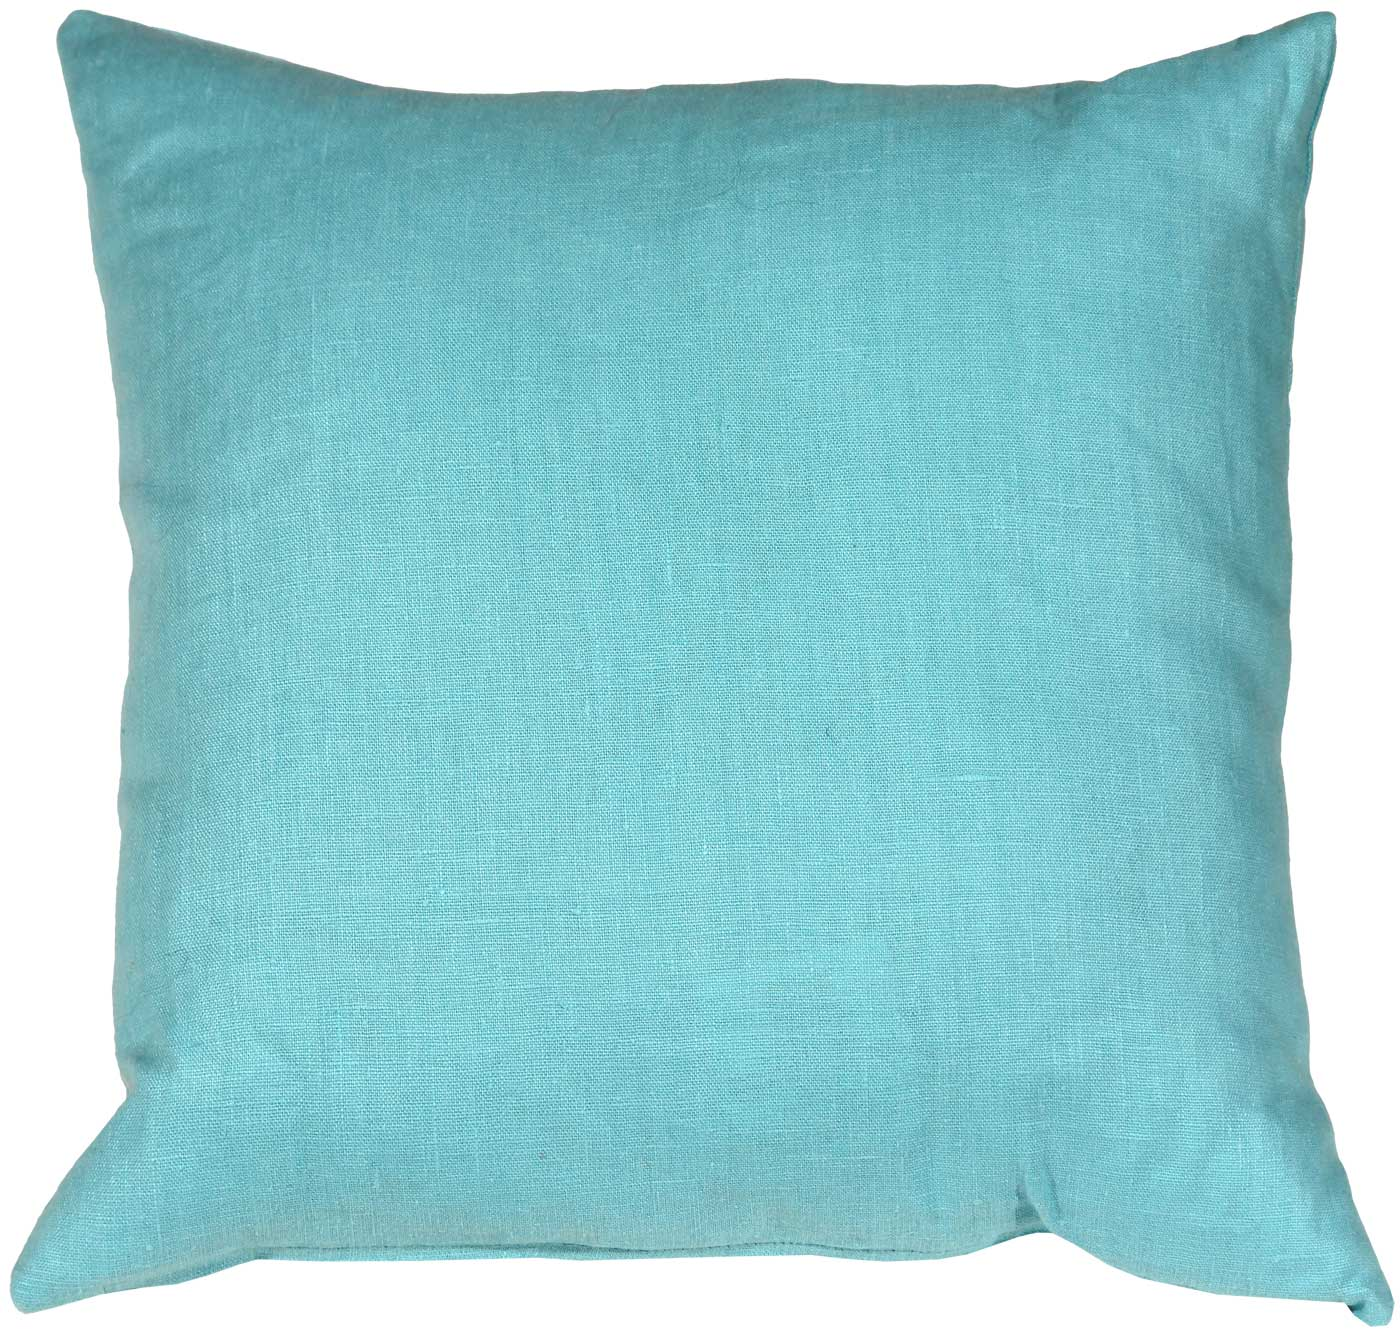 Tuscany Linen Turquoise Pillow